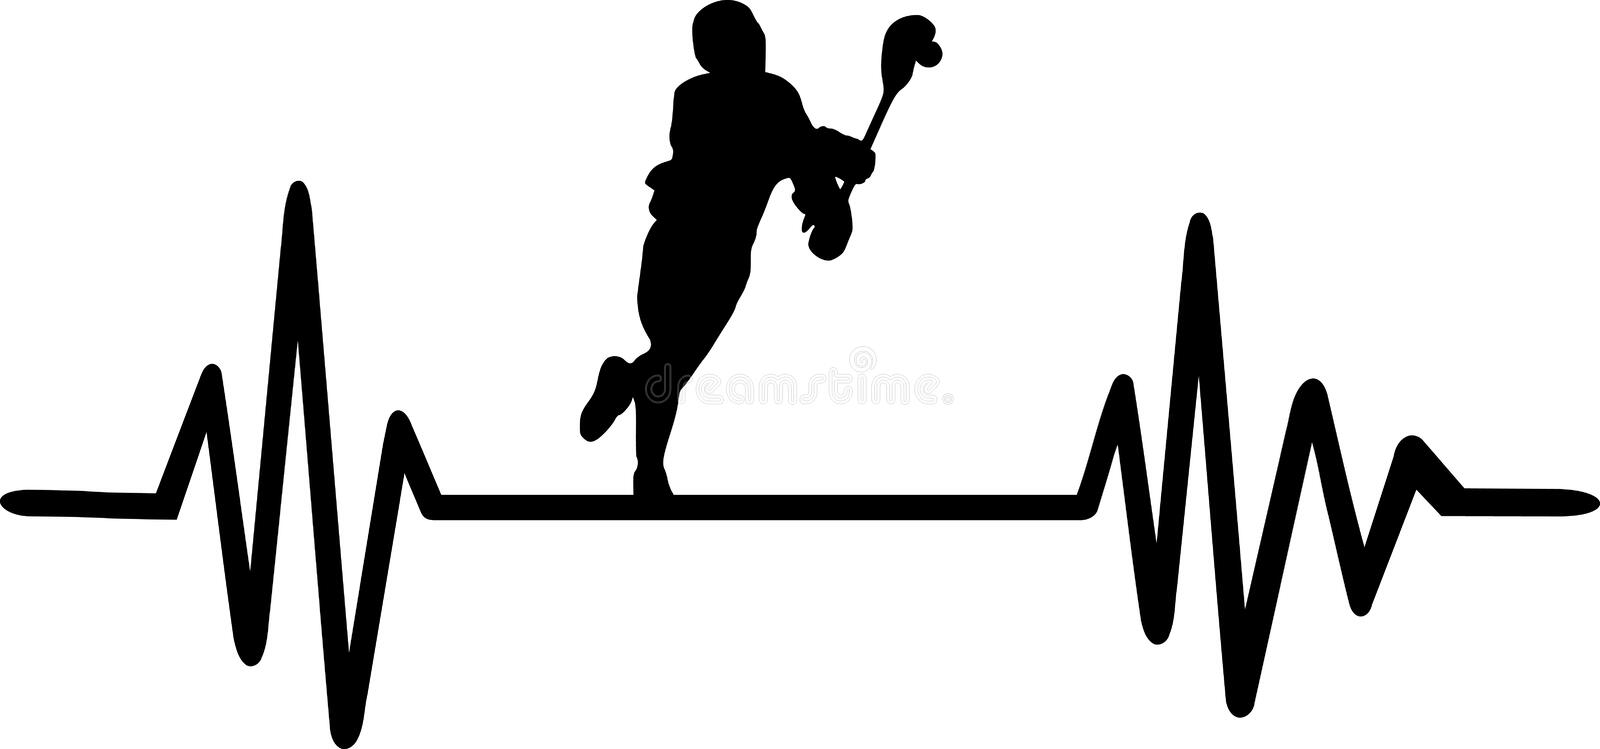 Lacrosse heartbeat pulse. Heartbeat pulse line with a running lacrosse player royalty free illustration